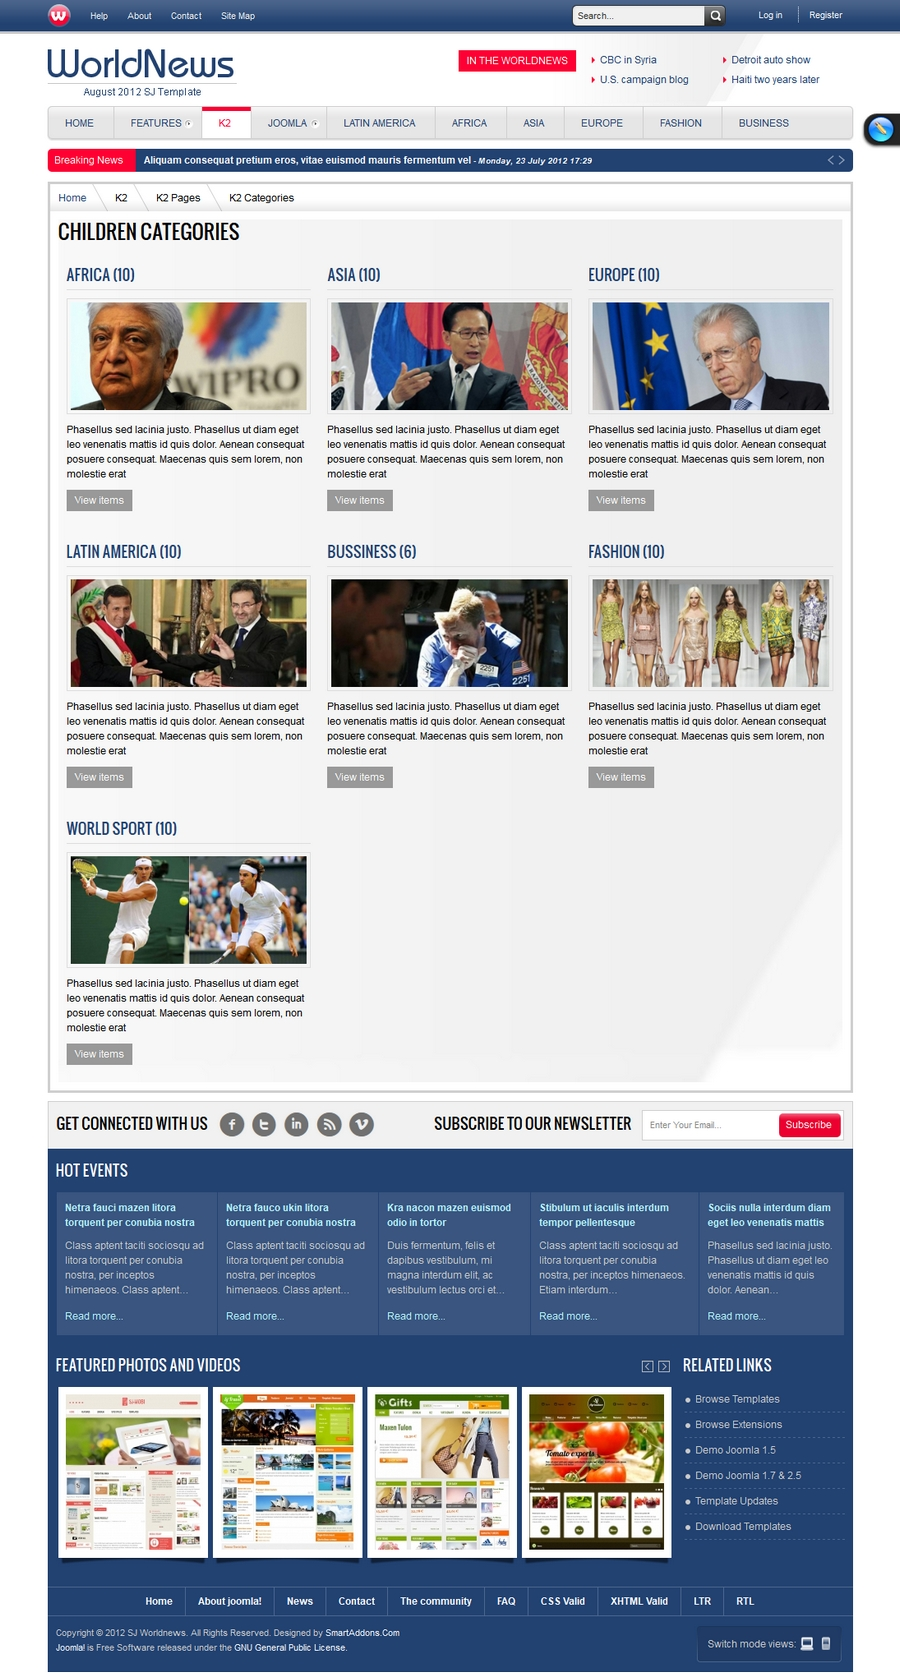 SJ WorldNews - Joomla Template for News magazine - 3listing.jpg